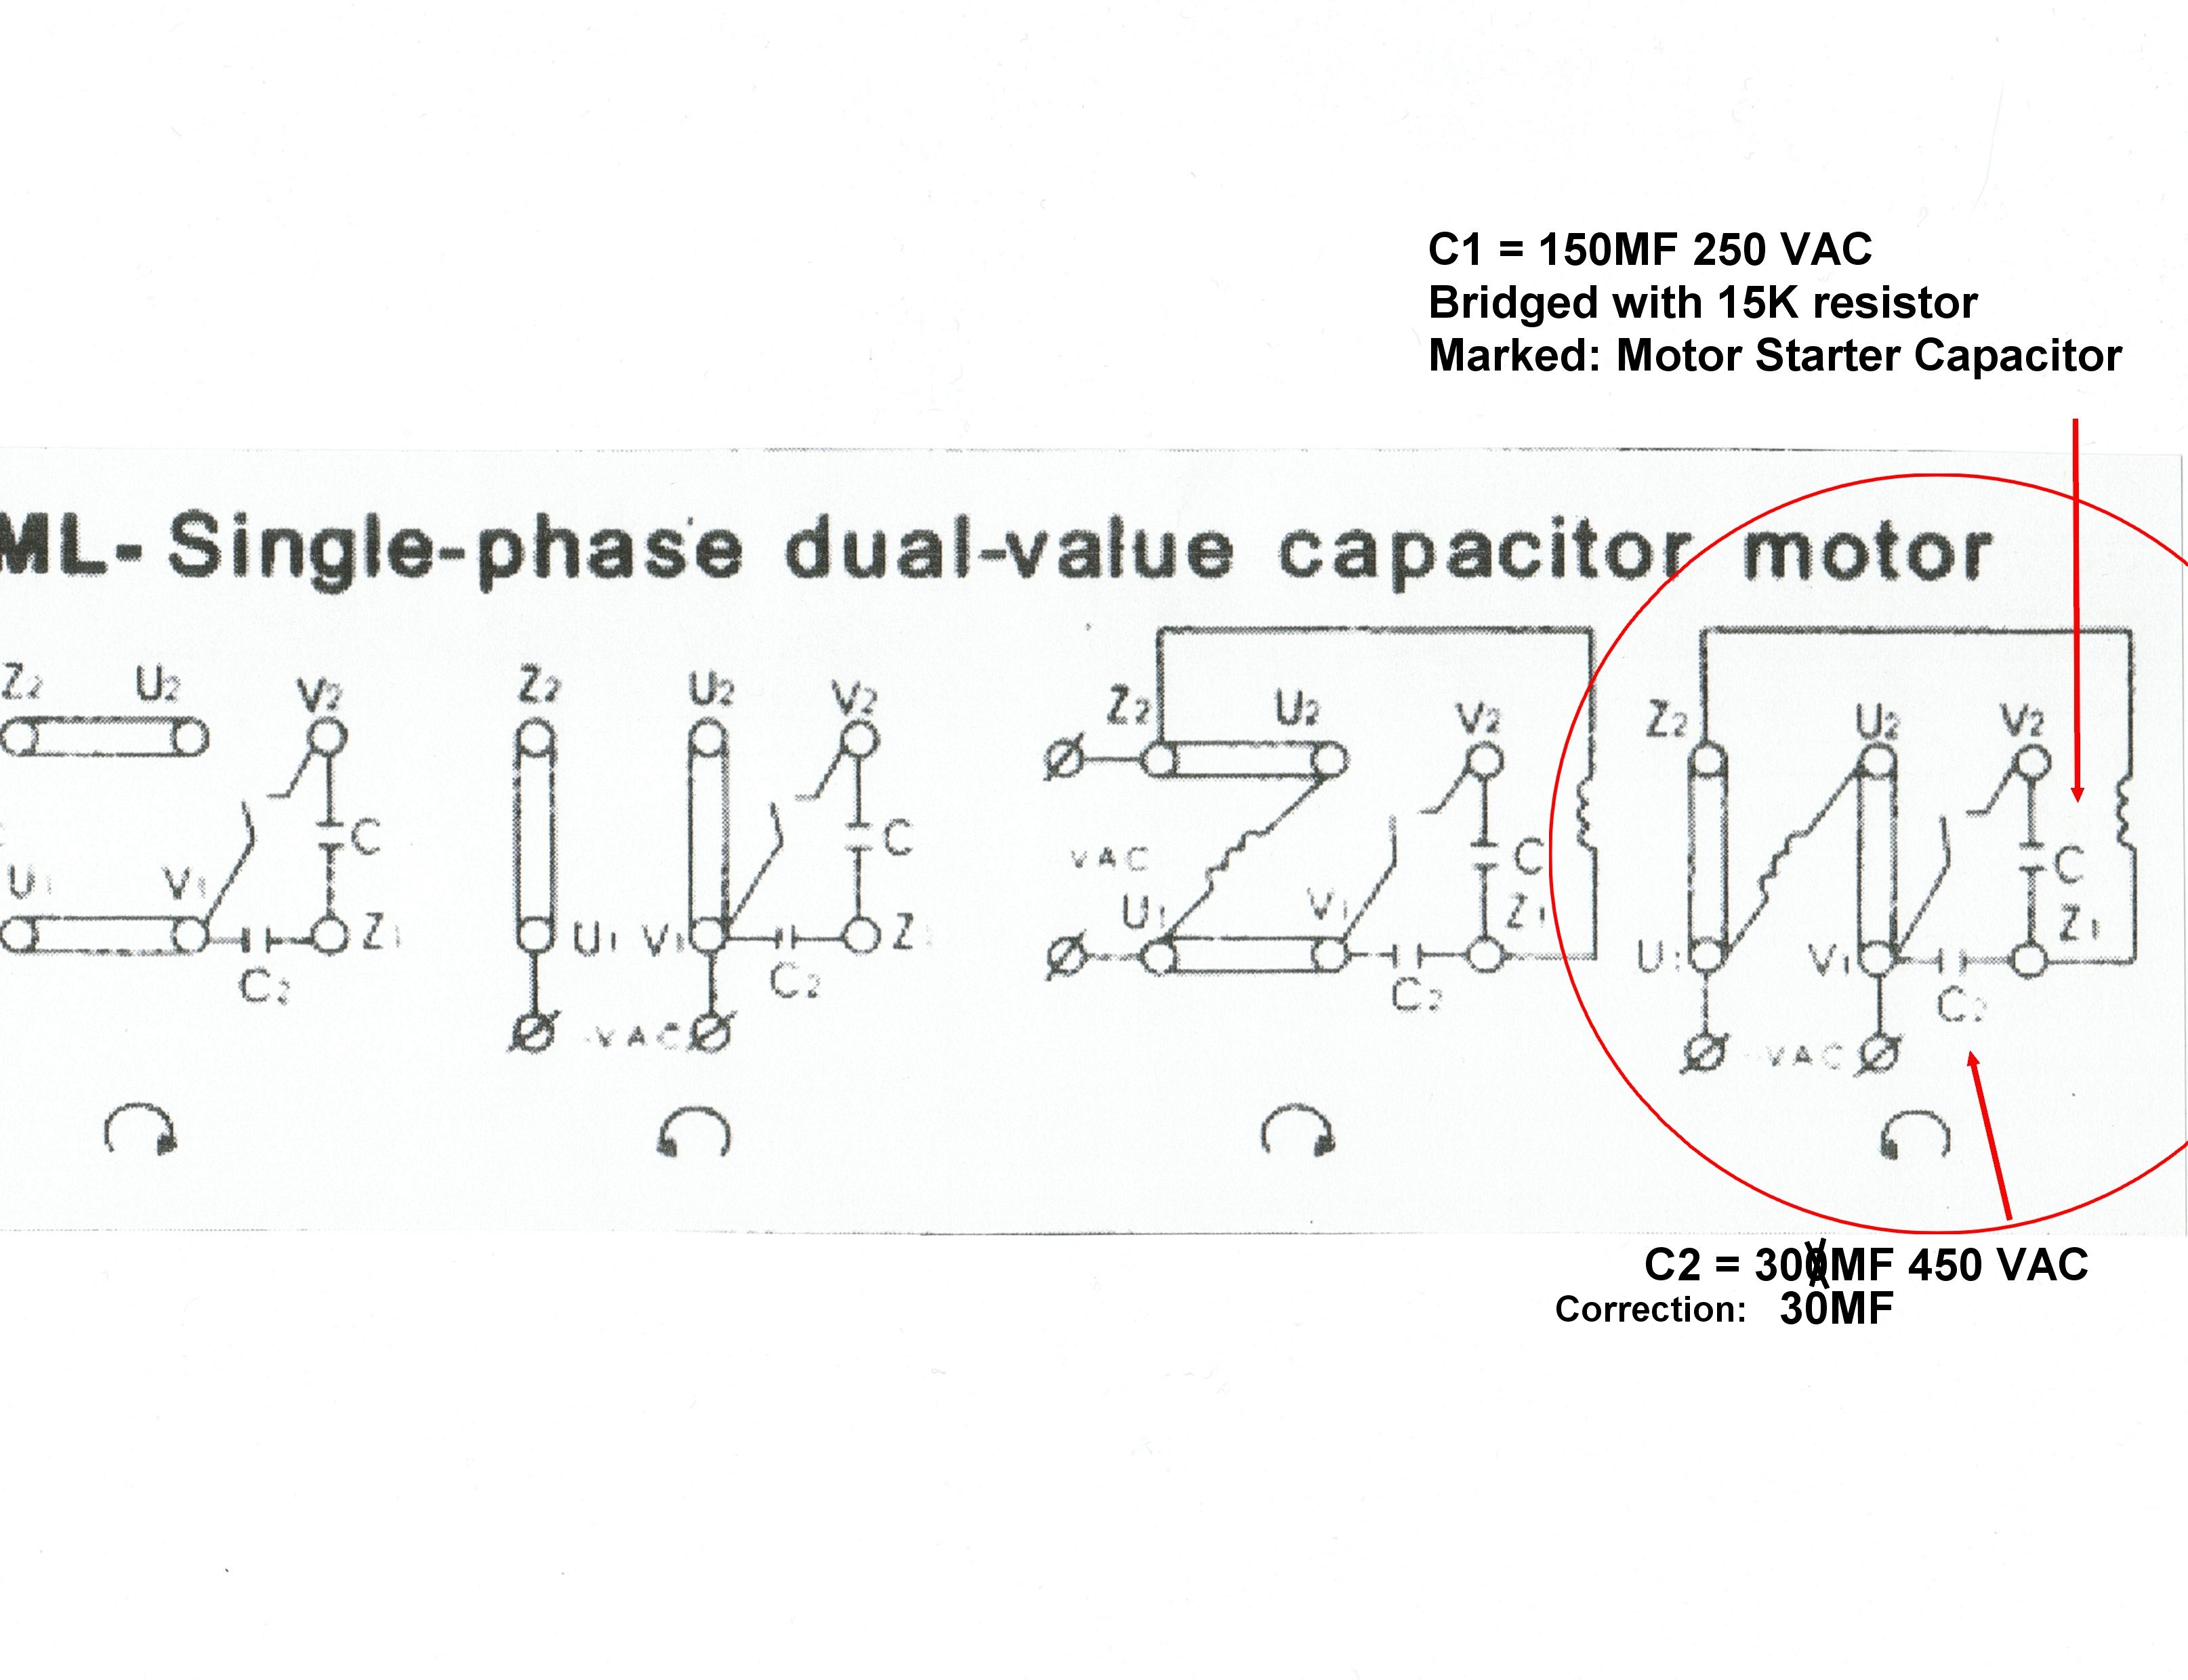 Re: Slow start 220V single phase induction motor